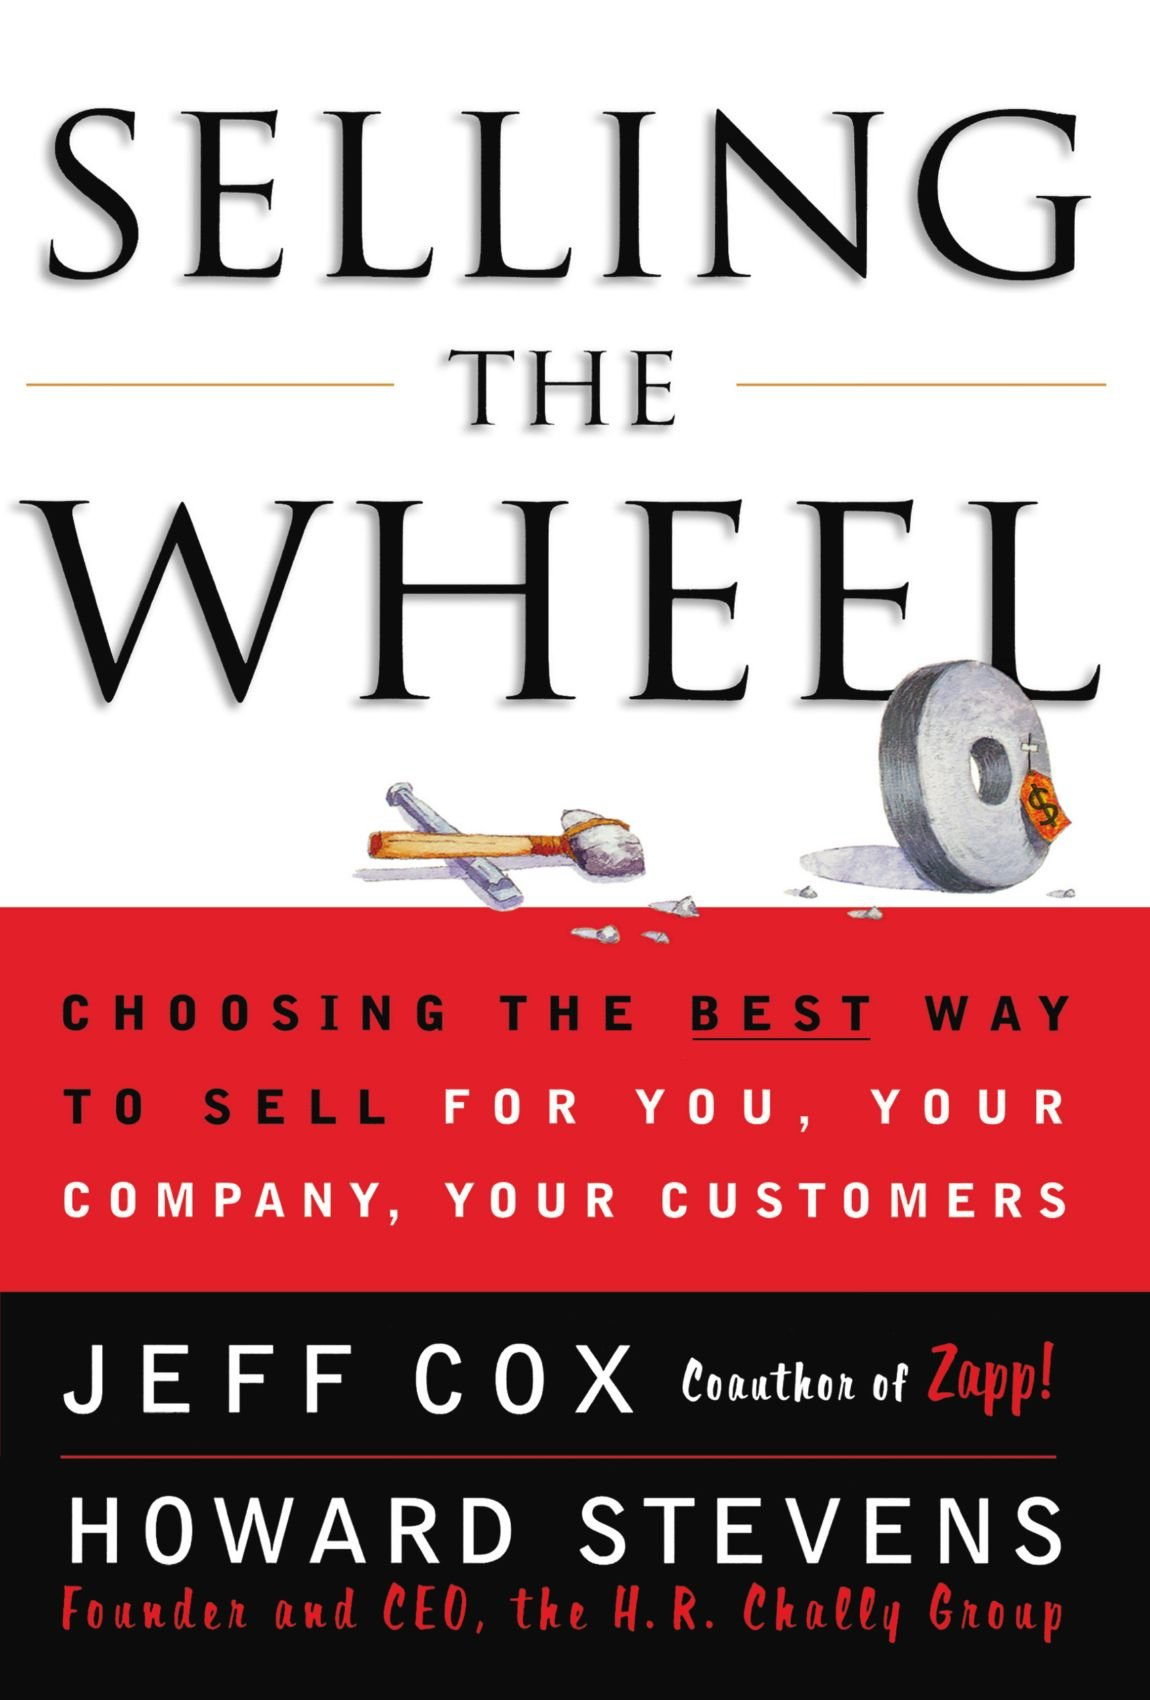 Selling Wheel Choosing Company Customers product image